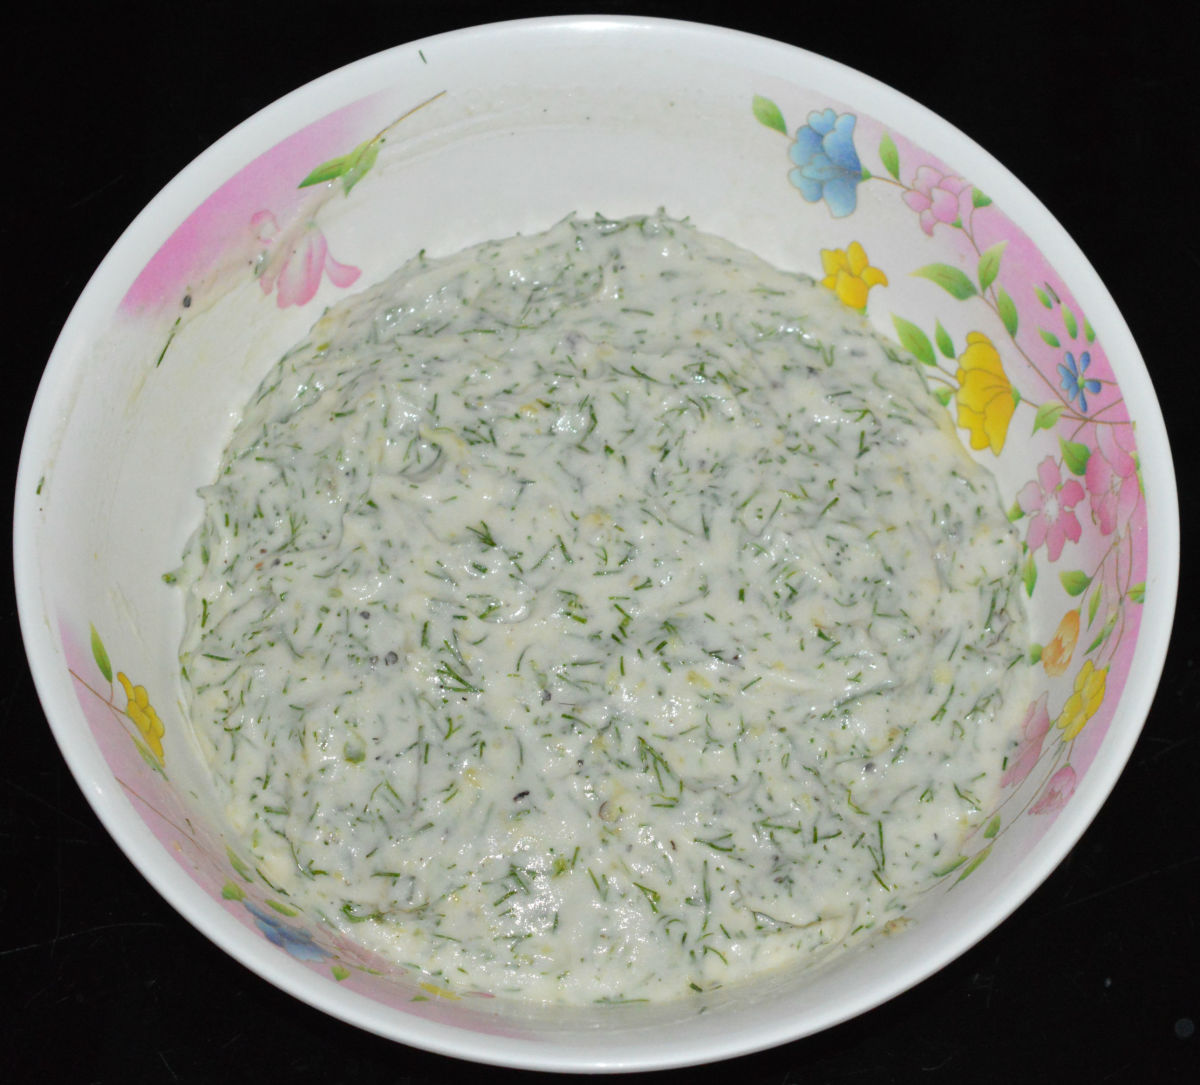 Collect batter in a mixing bowl and allow it to aerate. Add chopped dill leaves, spice mixture, and salt. Mix well.